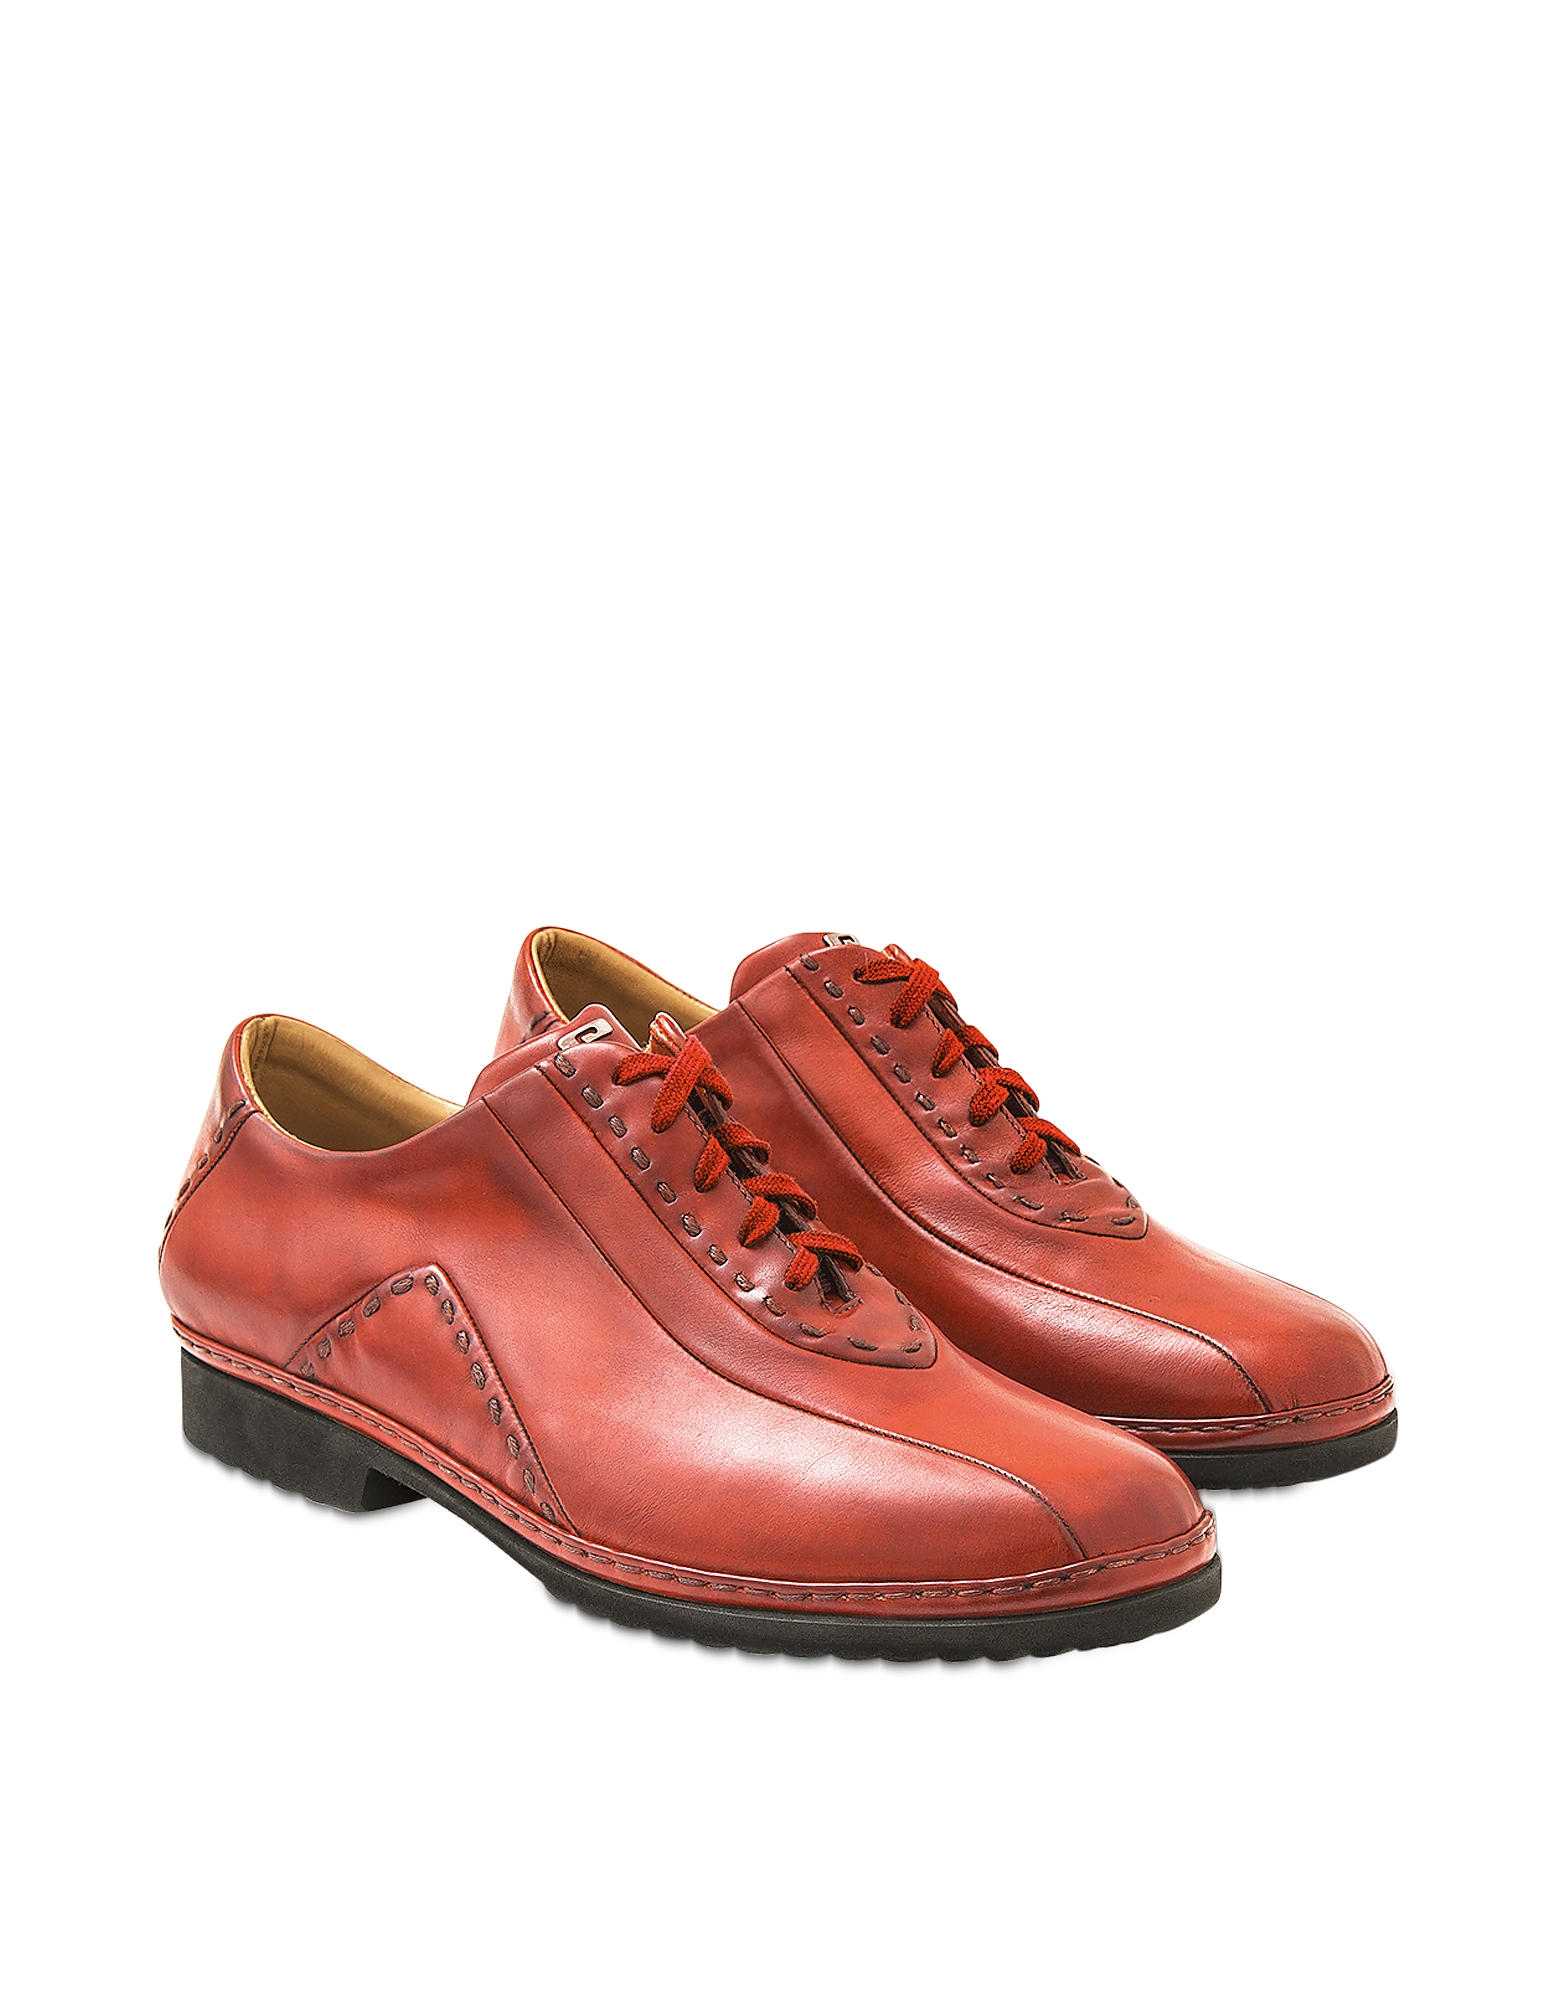 Pakerson Designer Shoes, Red Italian Hand Made Calf Leather Lace-up Shoes